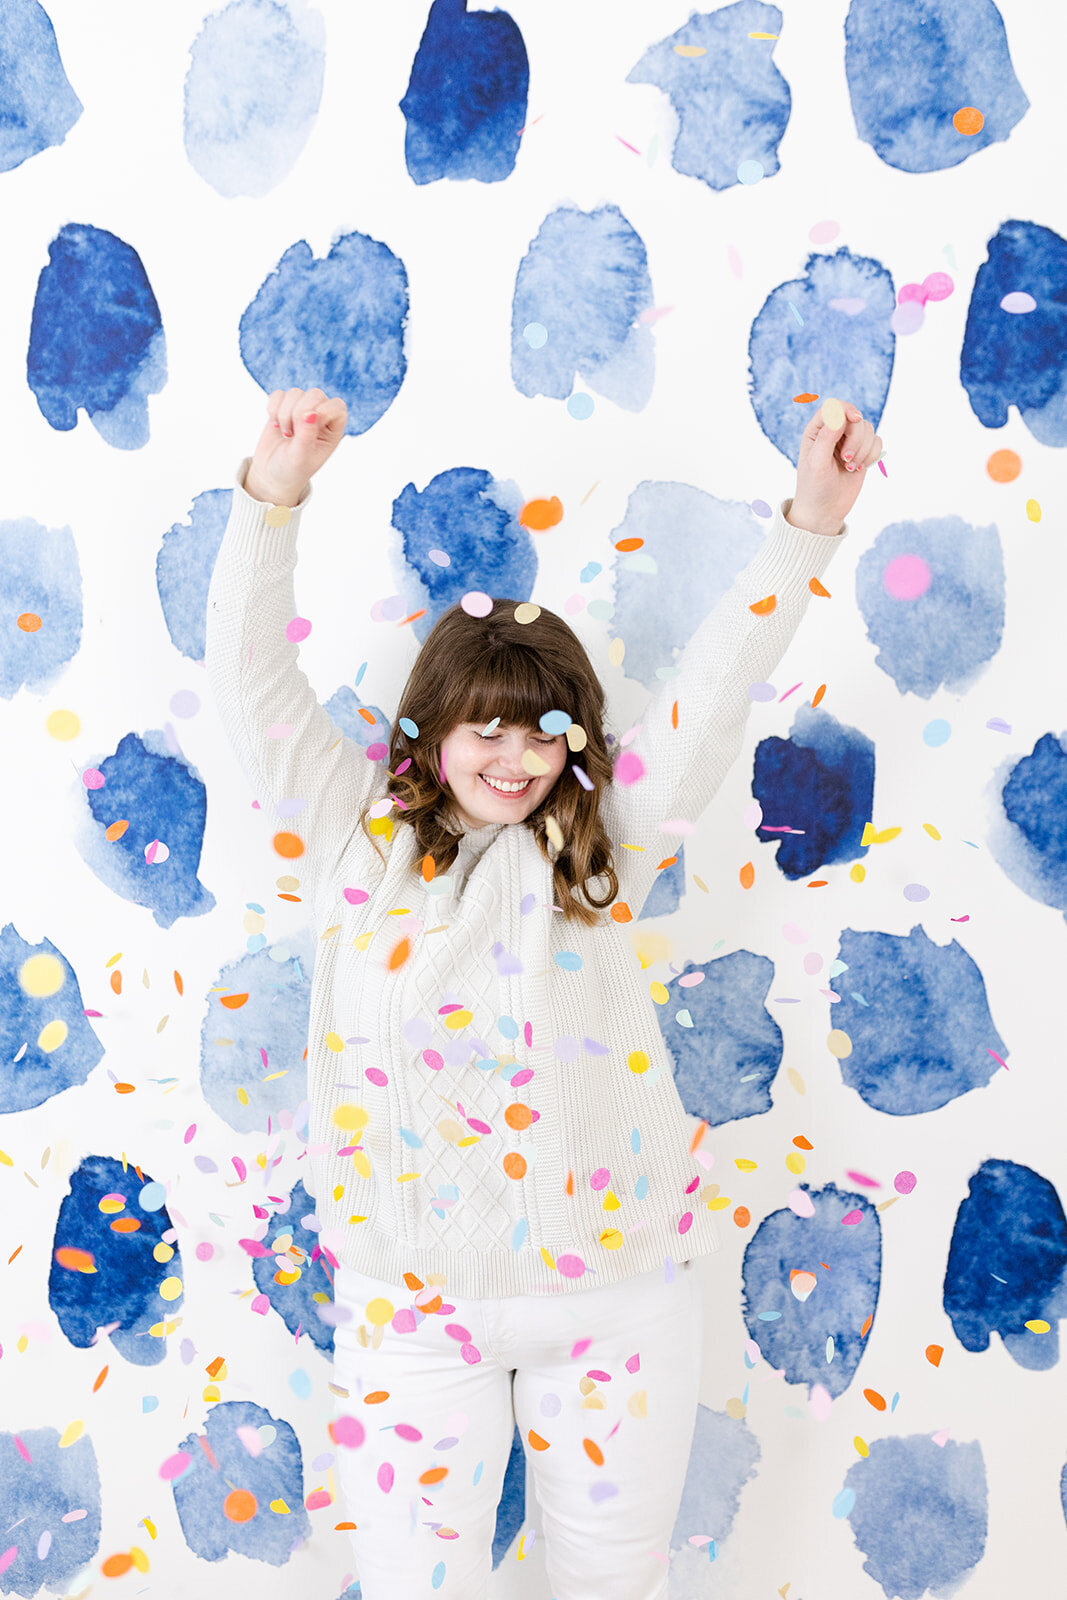 confetti with fun wall for branding photos